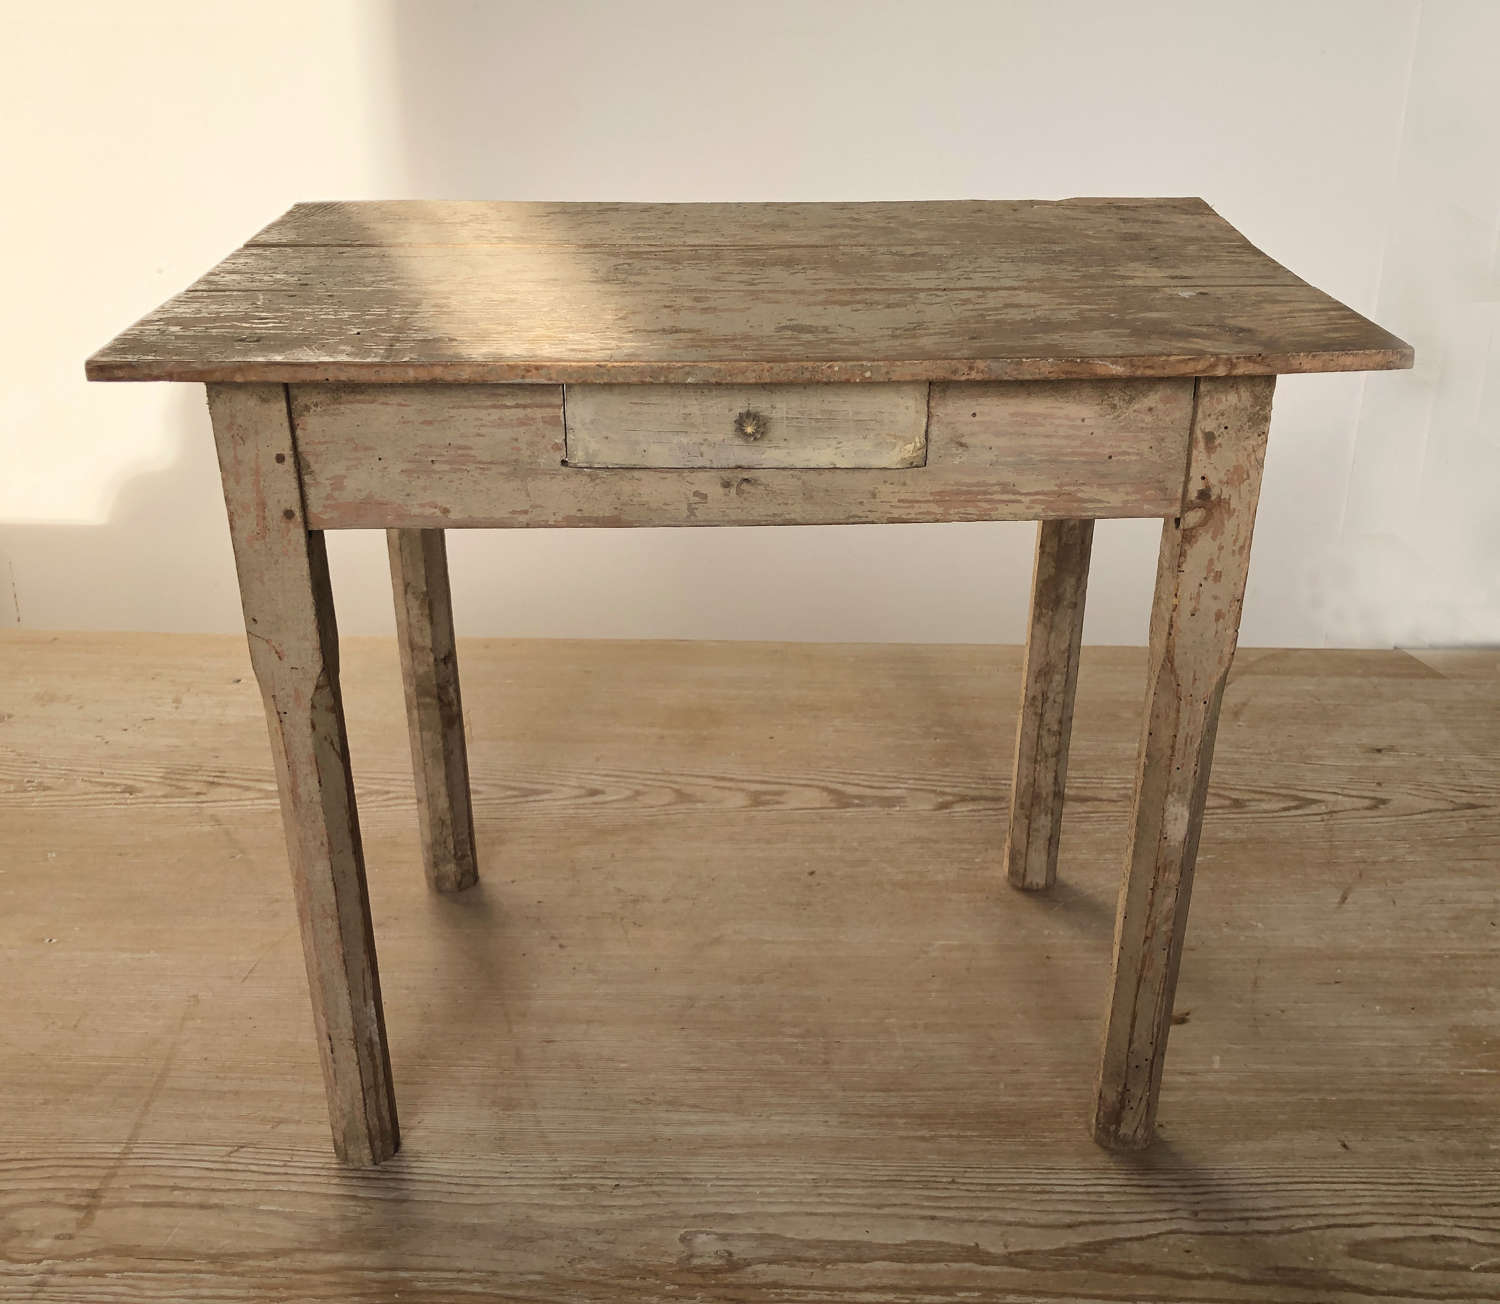 Miniature English pine kitchen Table - circa 1940